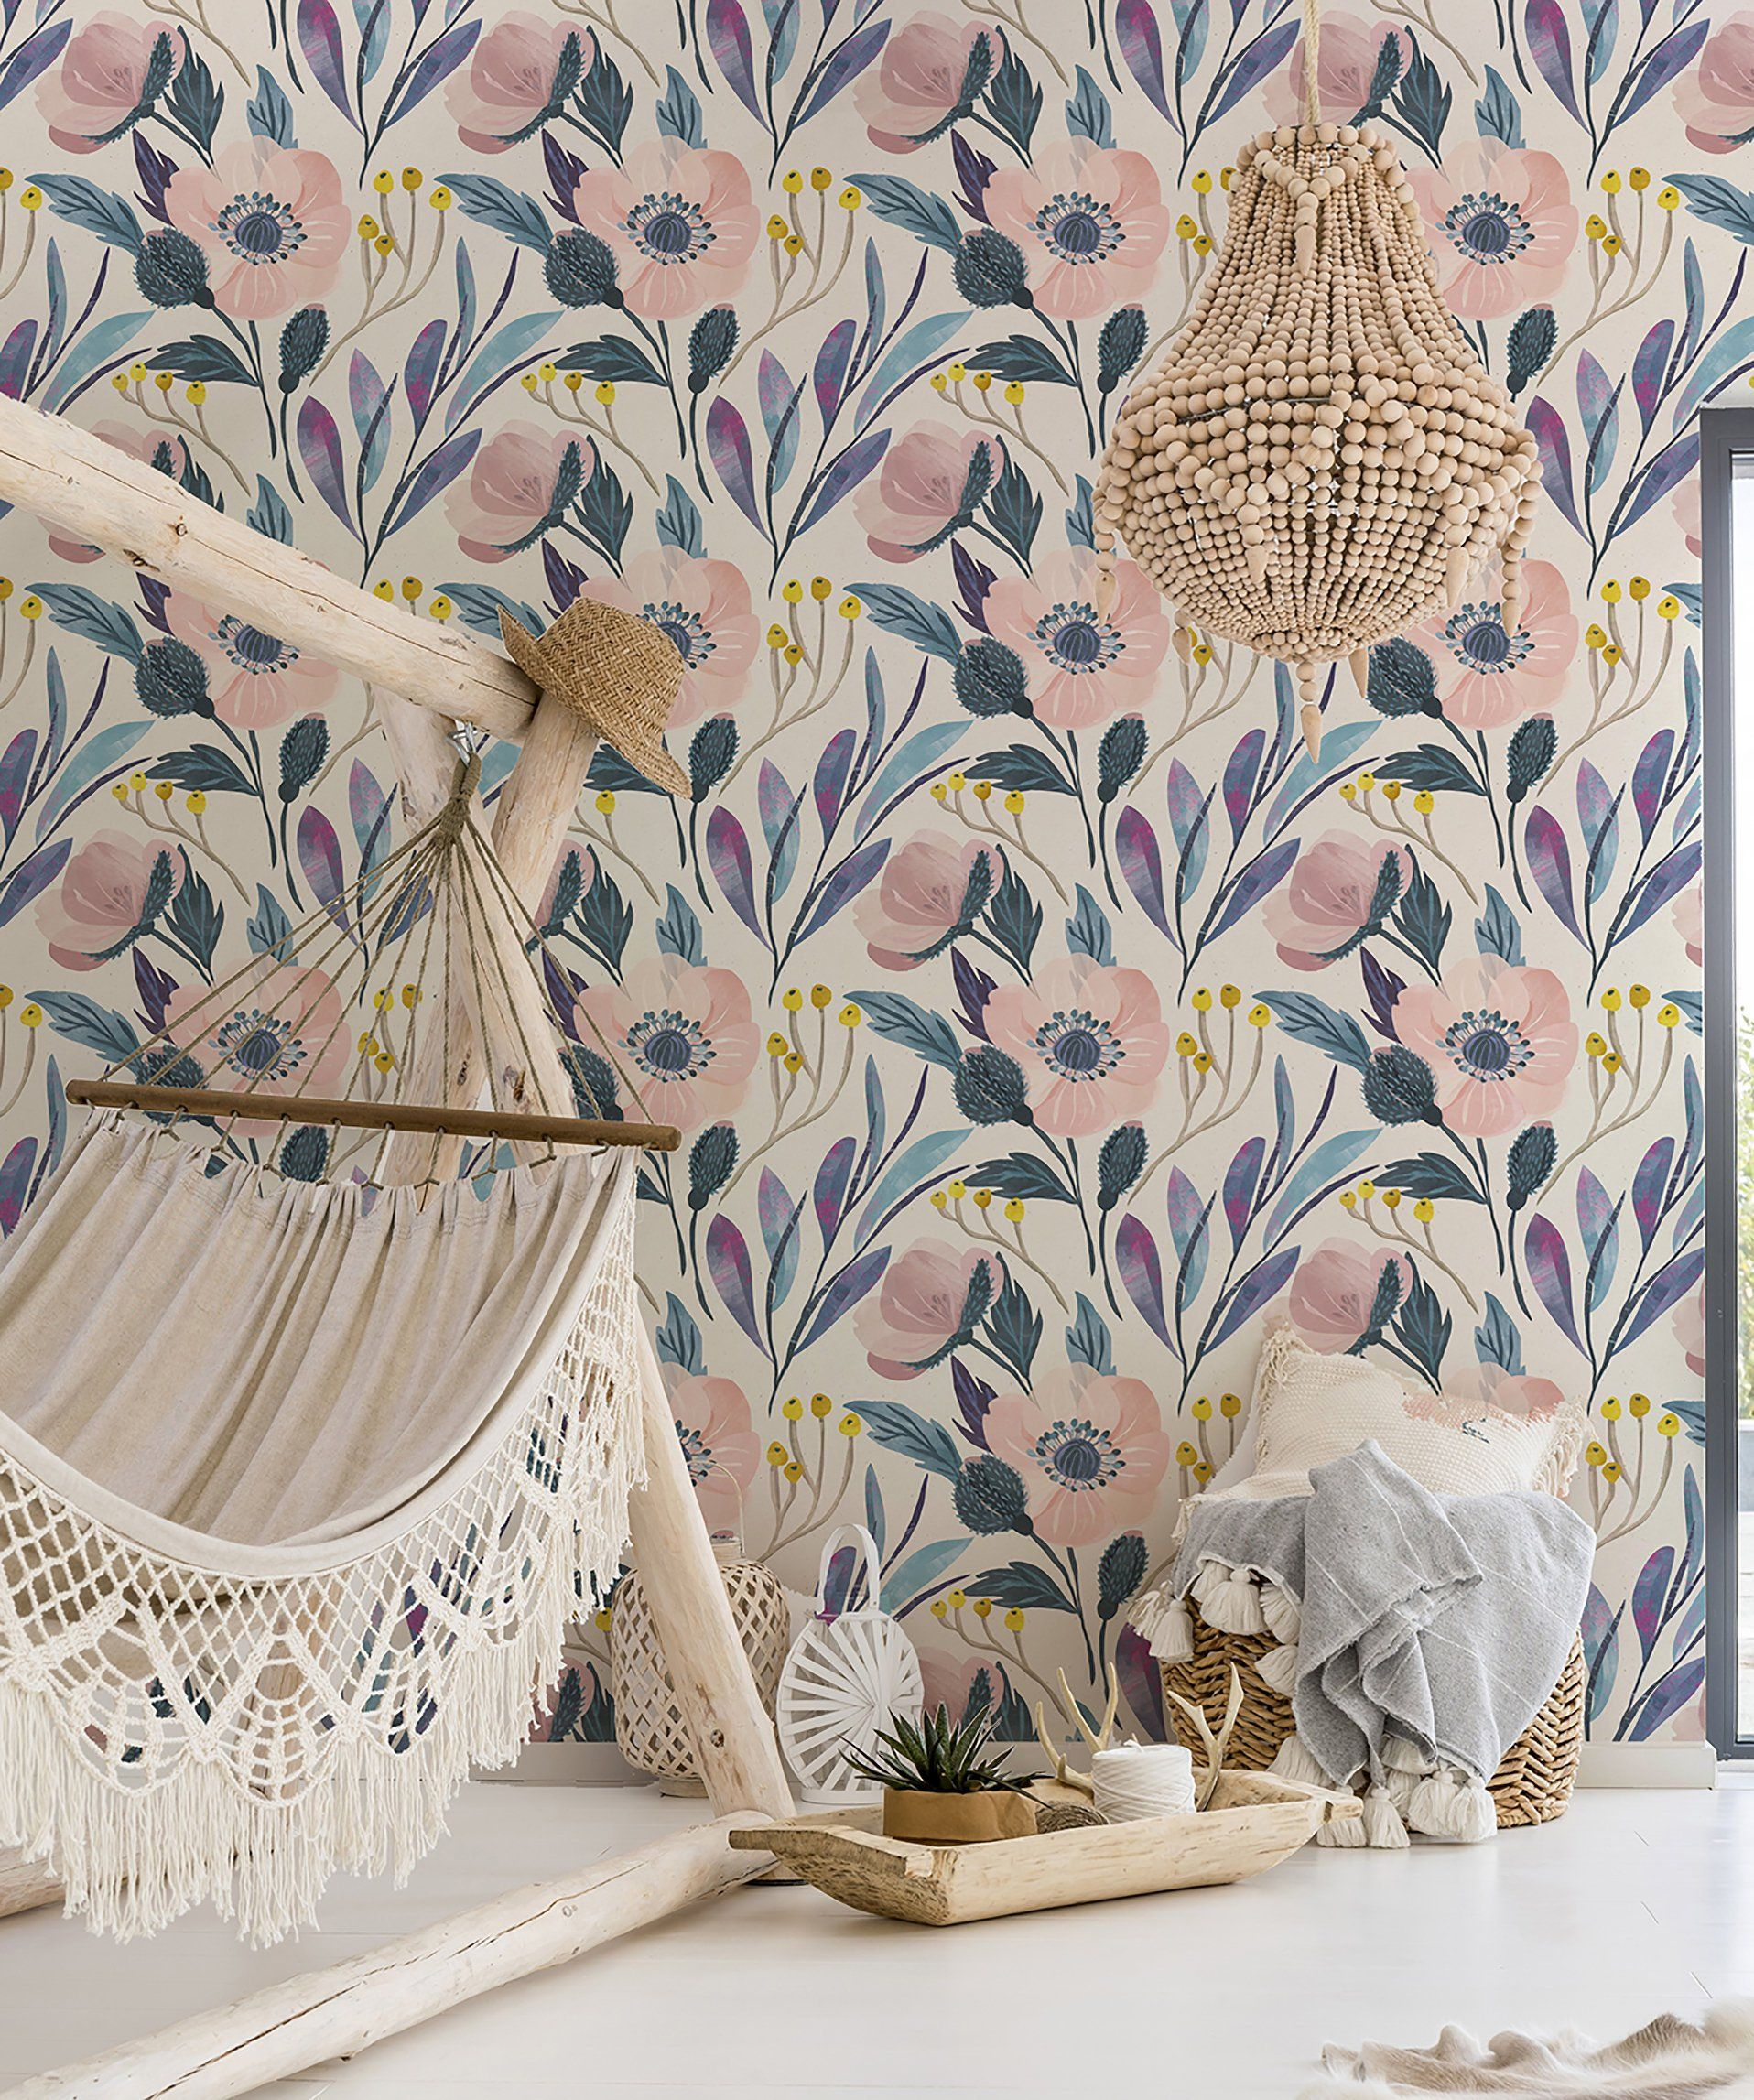 Jane Floral Easy To Apply Removable Peel N Stick Or Etsy Prepasted Wallpaper Removable Wallpaper Fern Wallpaper